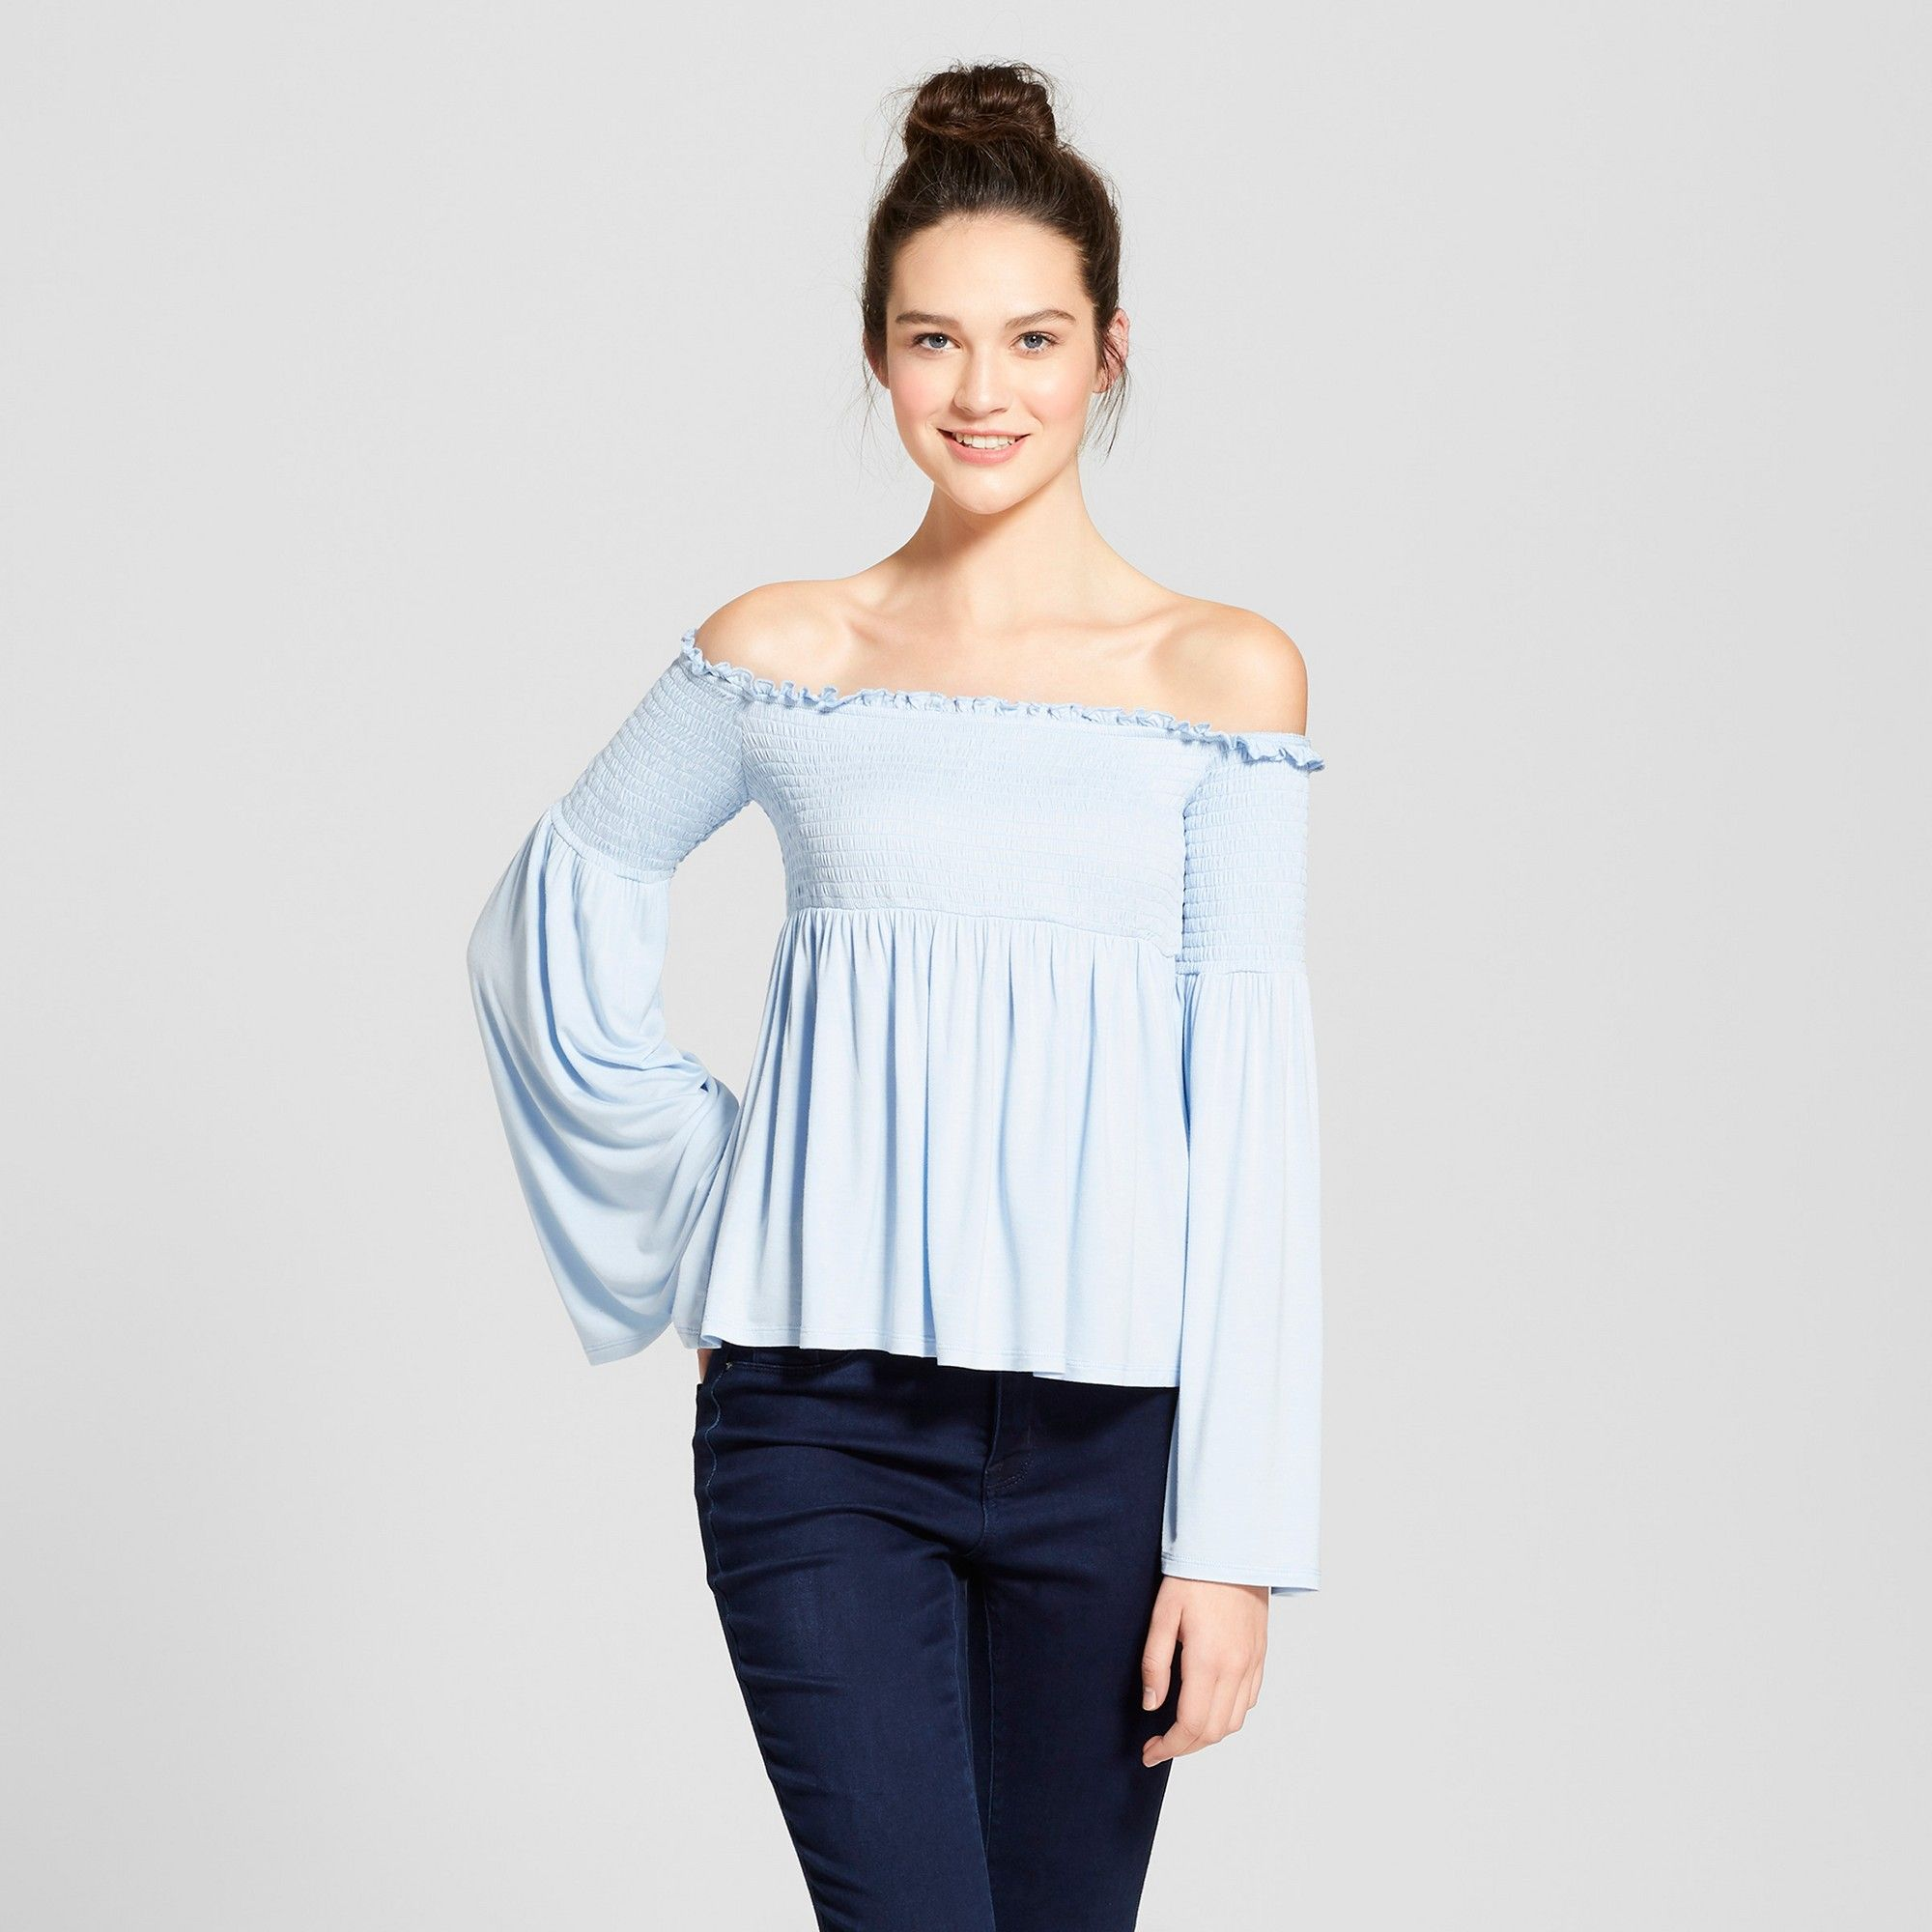 2f20dc34d10e34 Women's Smocked Off the Shoulder Top - Mossimo Supply Co. Blue S ...